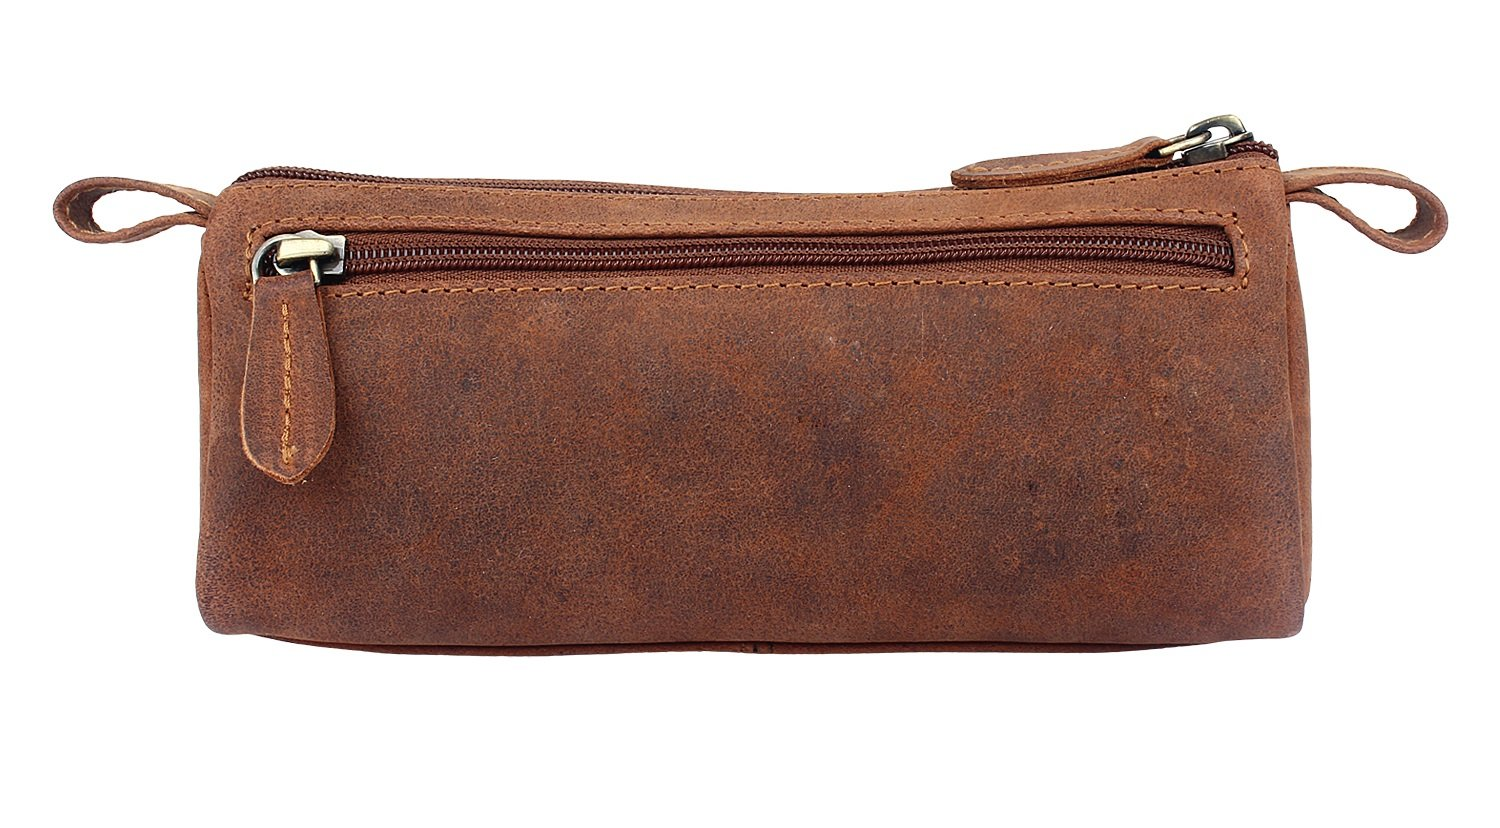 Leather Pencil Case - Zippered Pen Pouch for School, Work & Office by Rustic Town by RusticTown (Image #6)